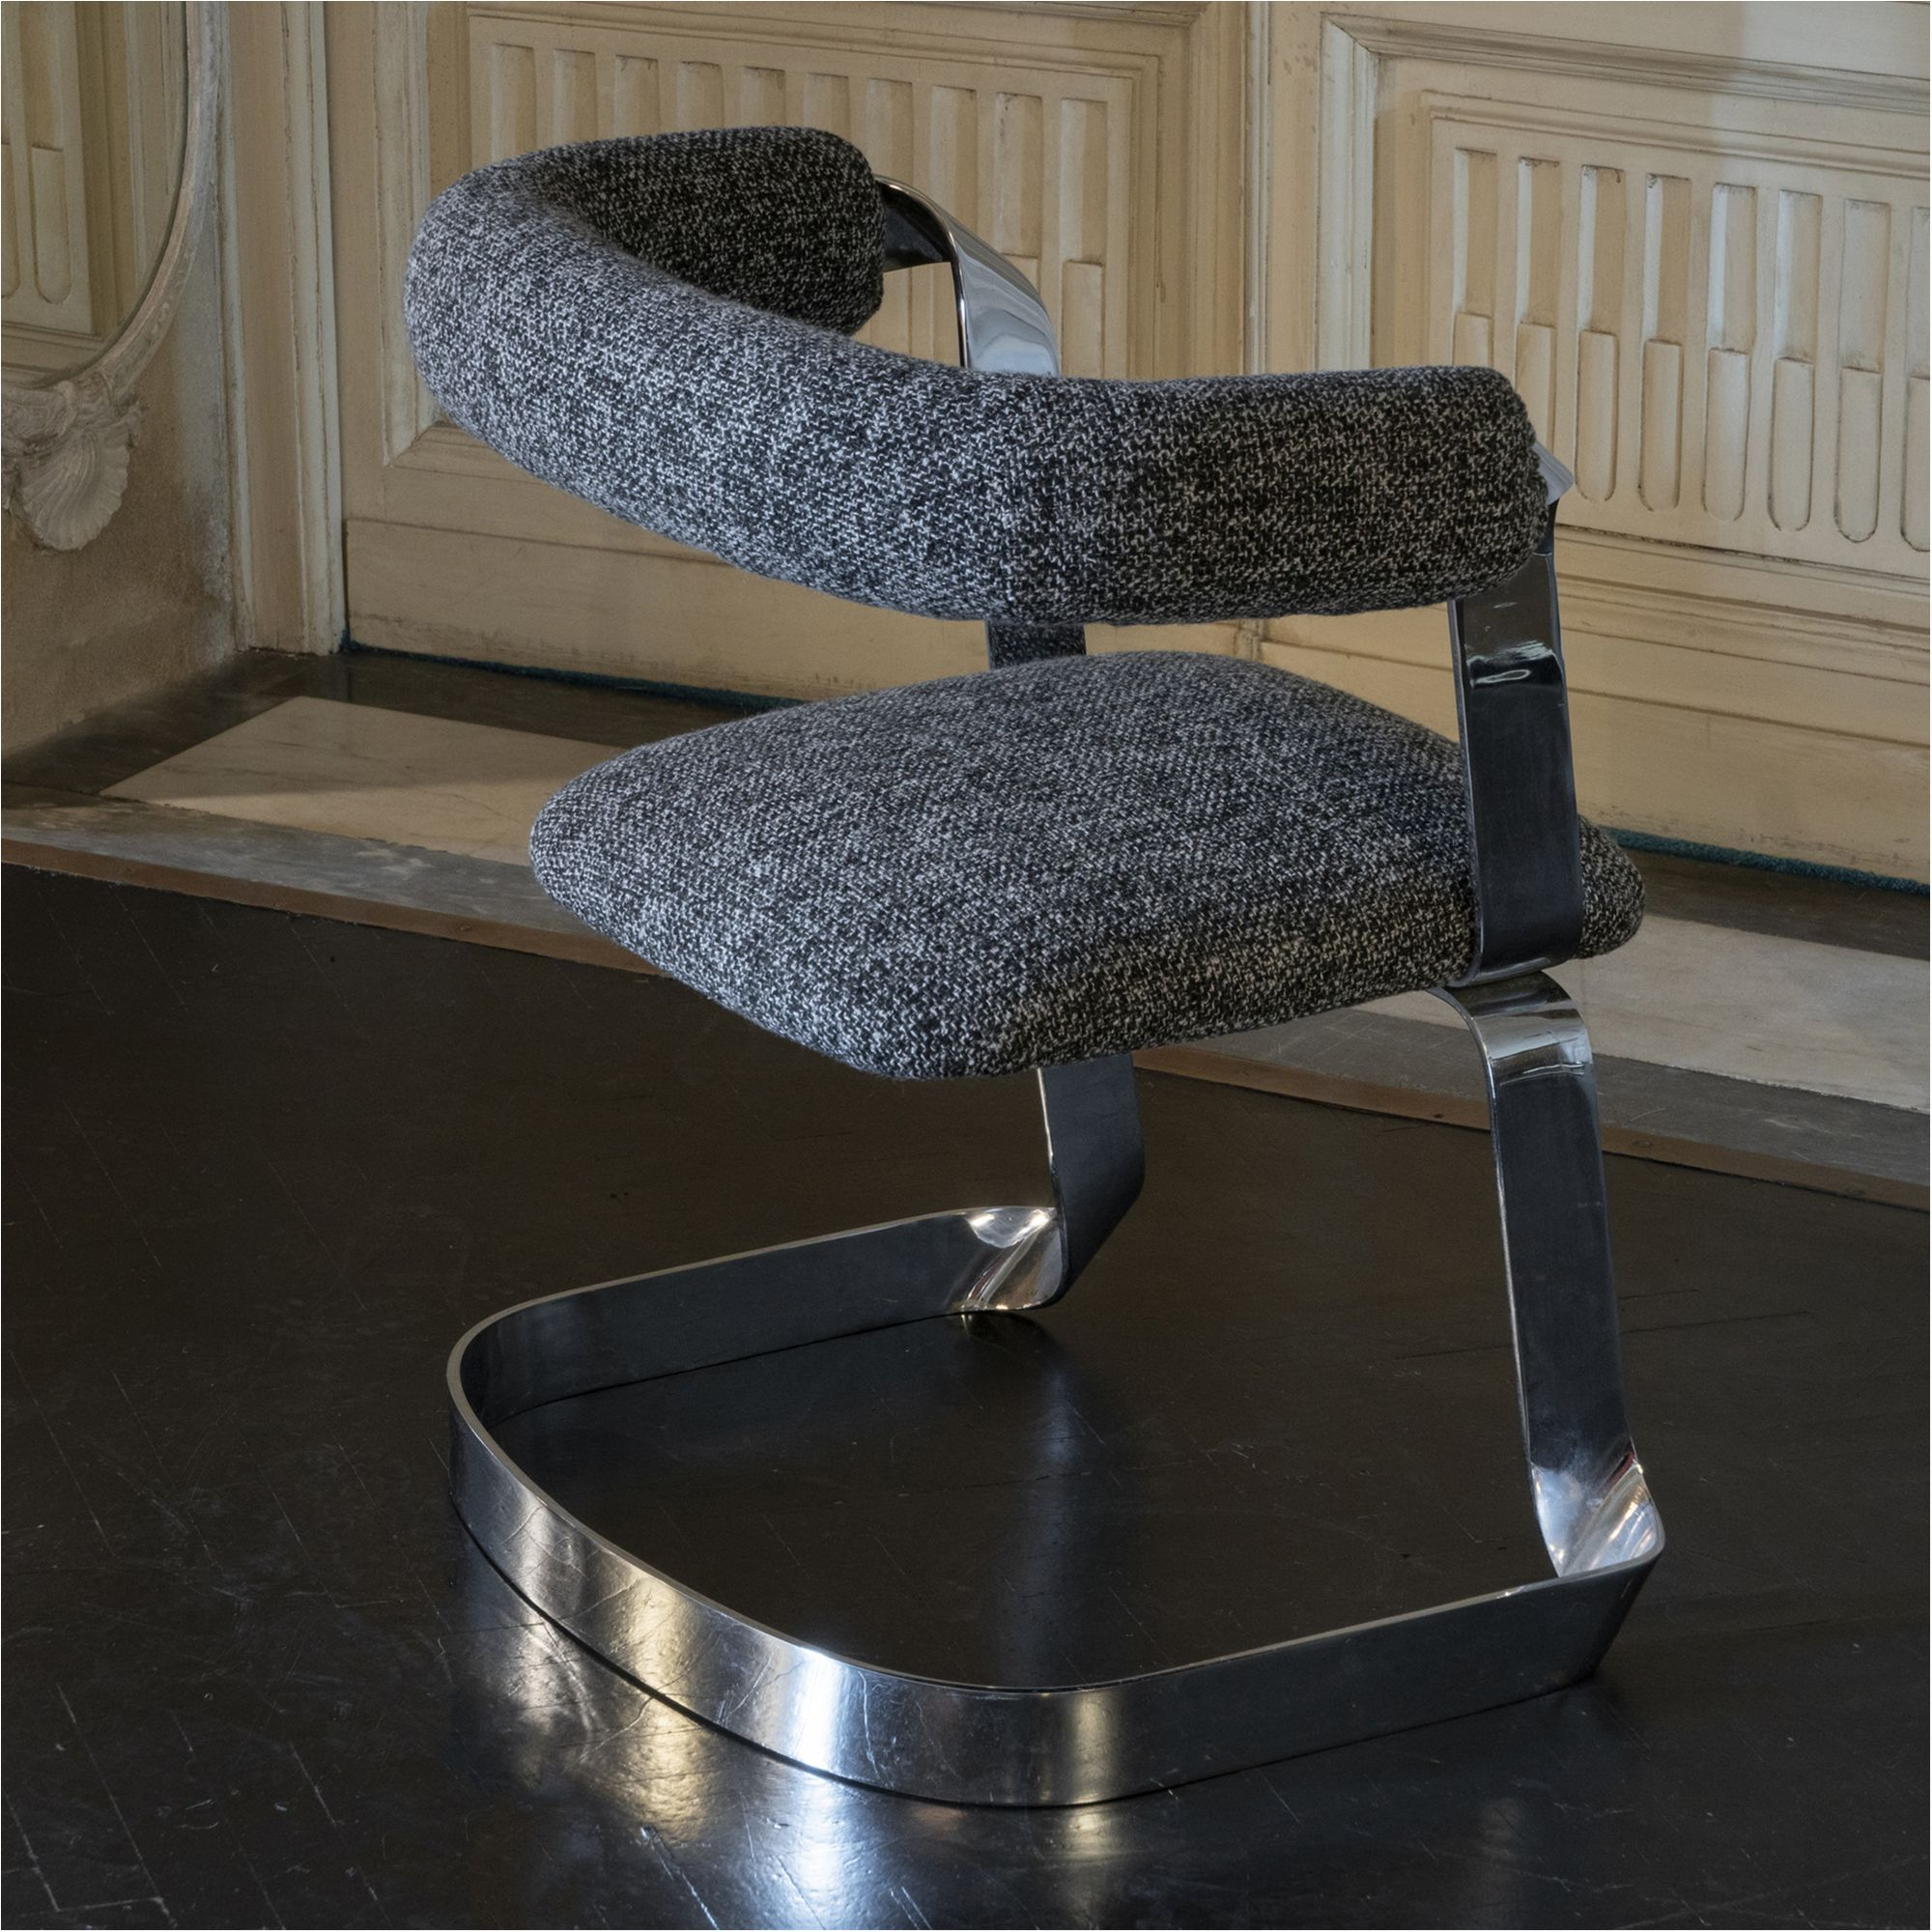 Wondrous Set Of Two Chromed Dining Chairs Black White Grey Woven Dailytribune Chair Design For Home Dailytribuneorg